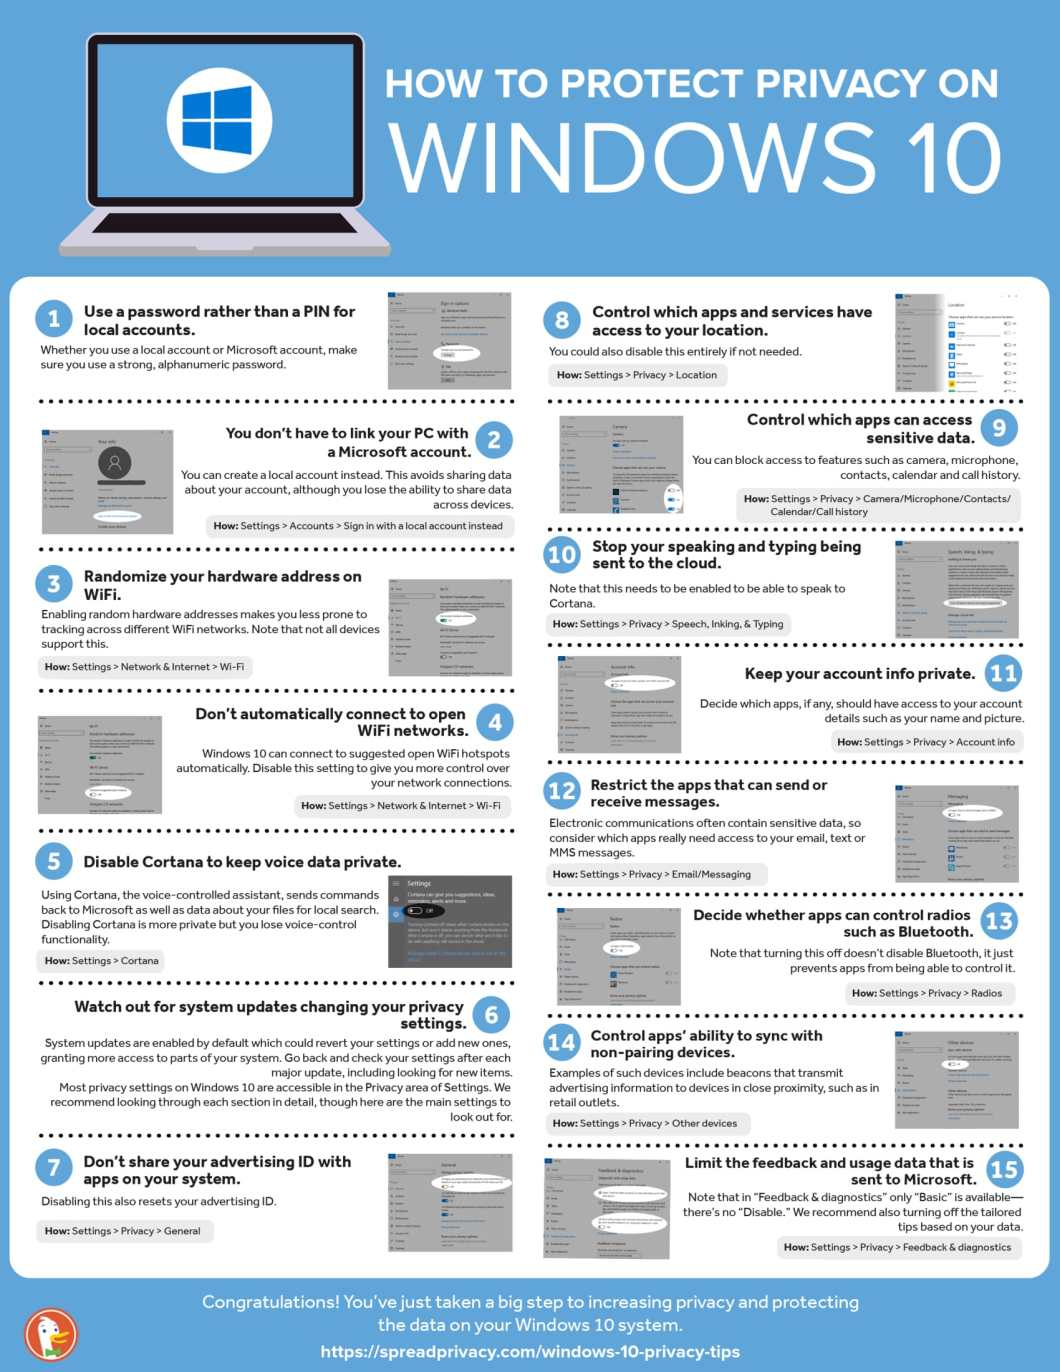 15 Ways to Protect Your Privacy on Window 10 - Infographic